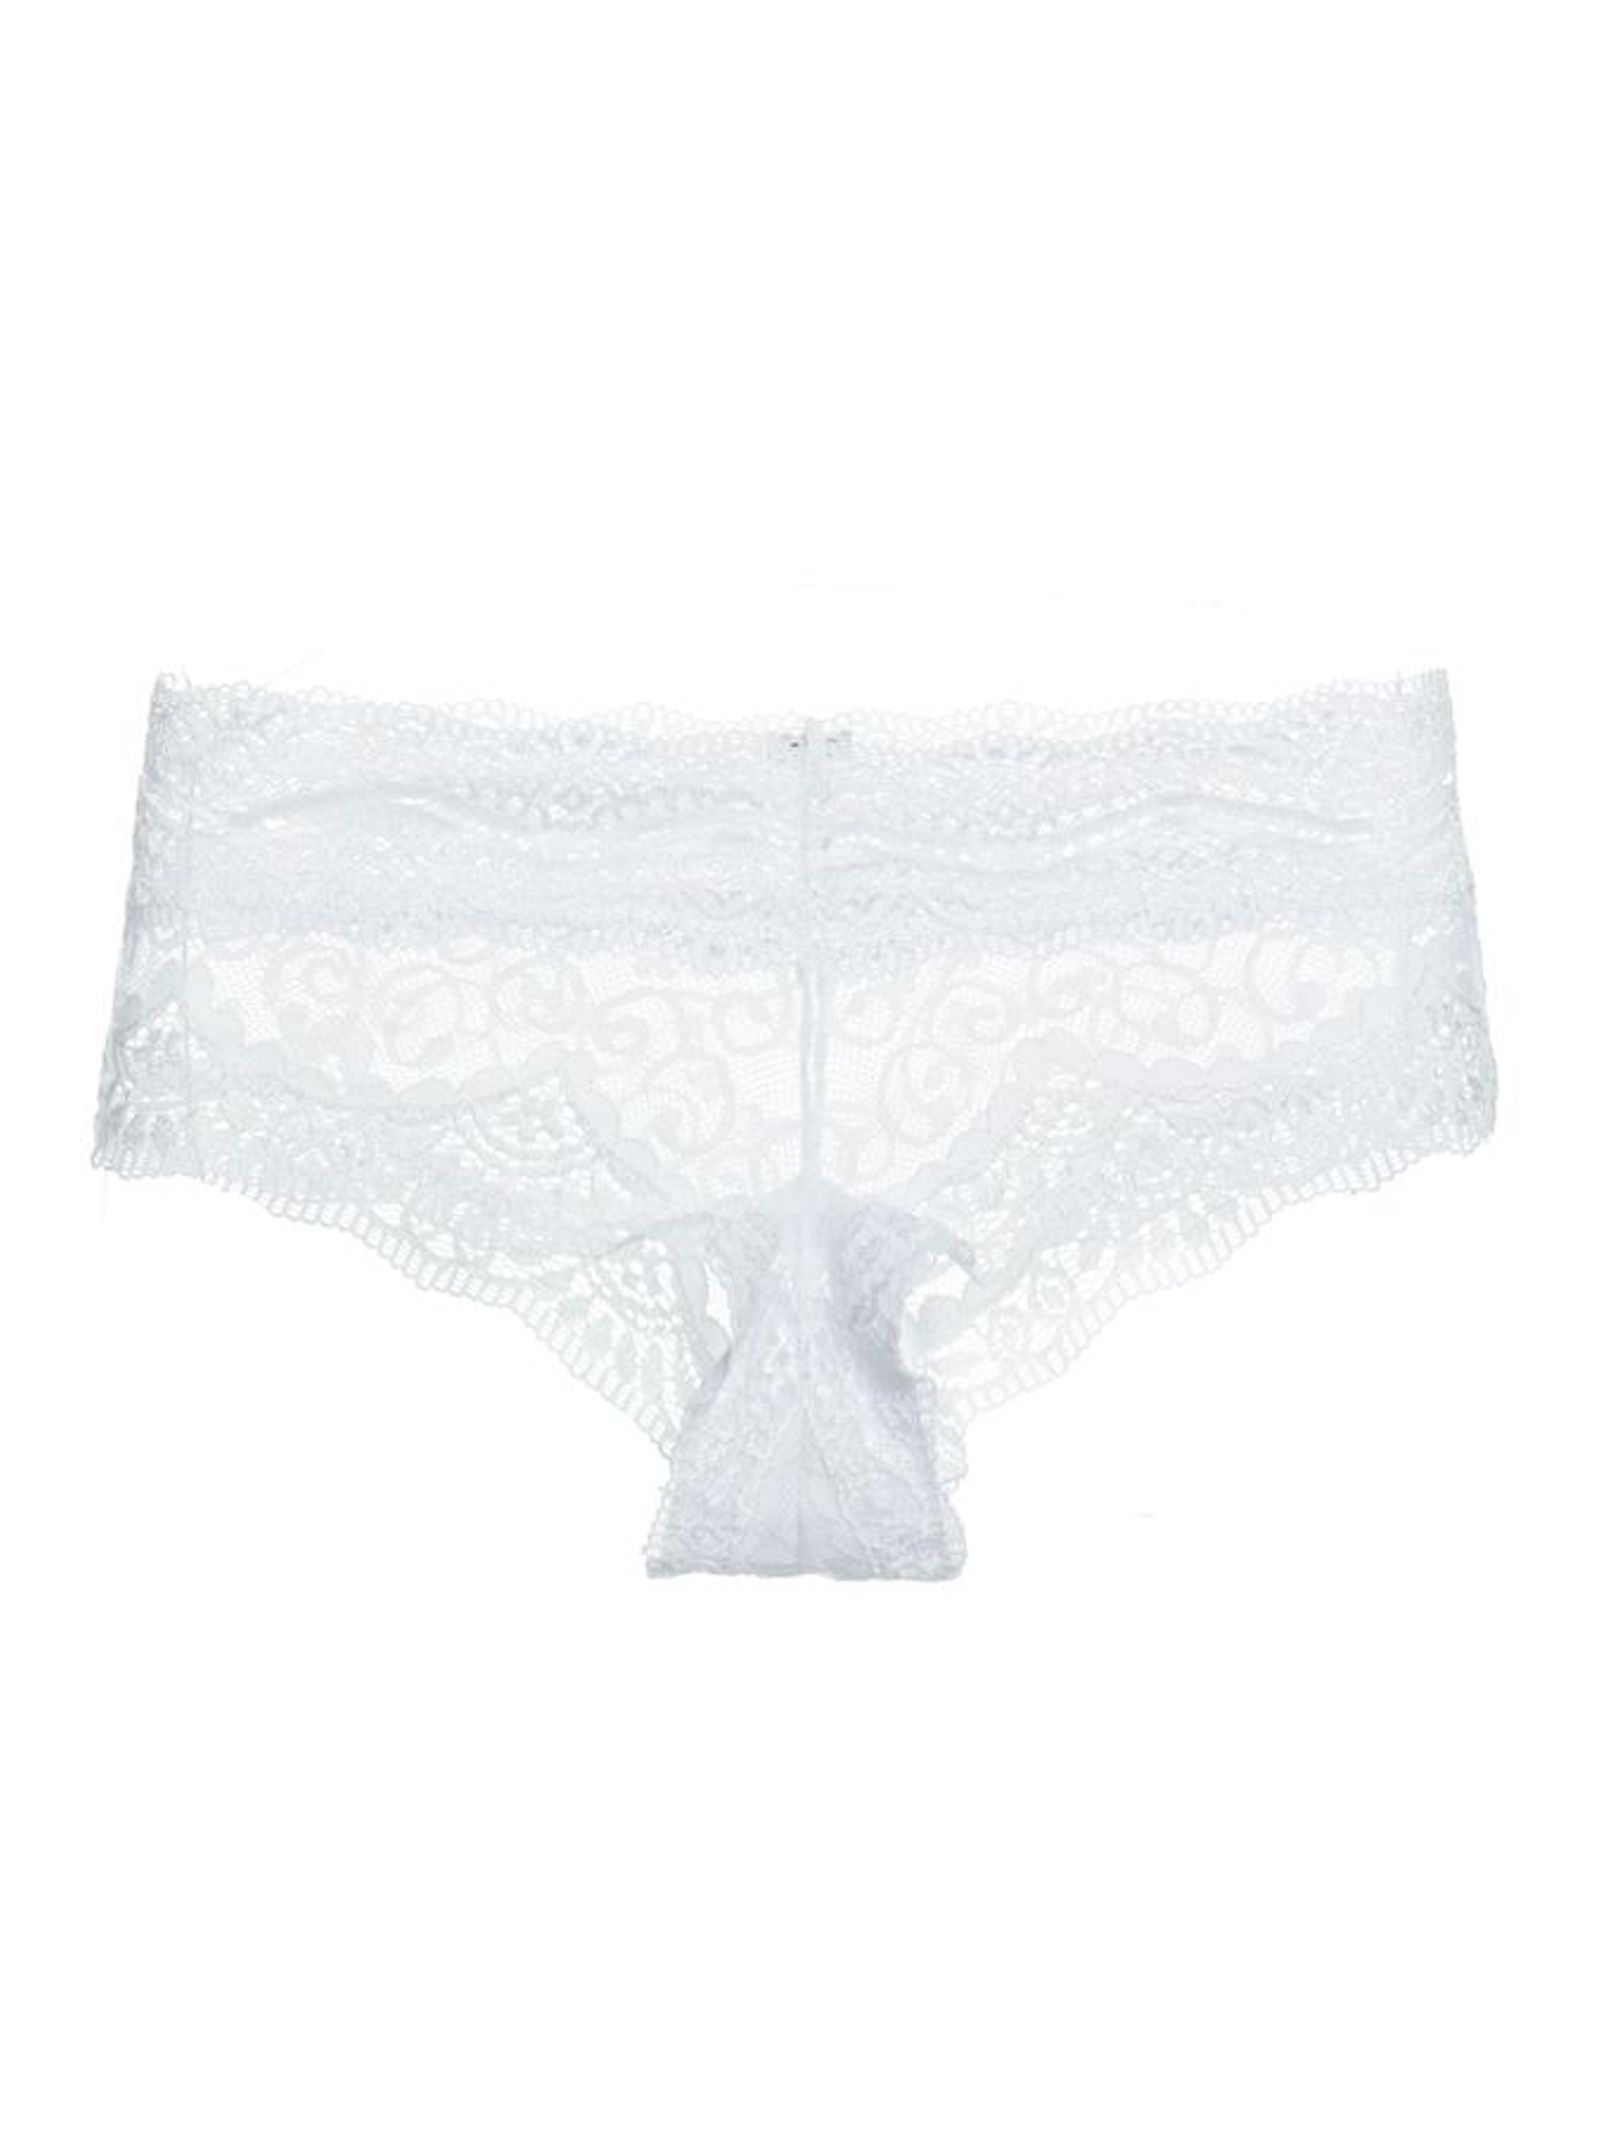 20090063_001_1-CALCINHA-BOYSHORT-RENDA-LOVE-LACE